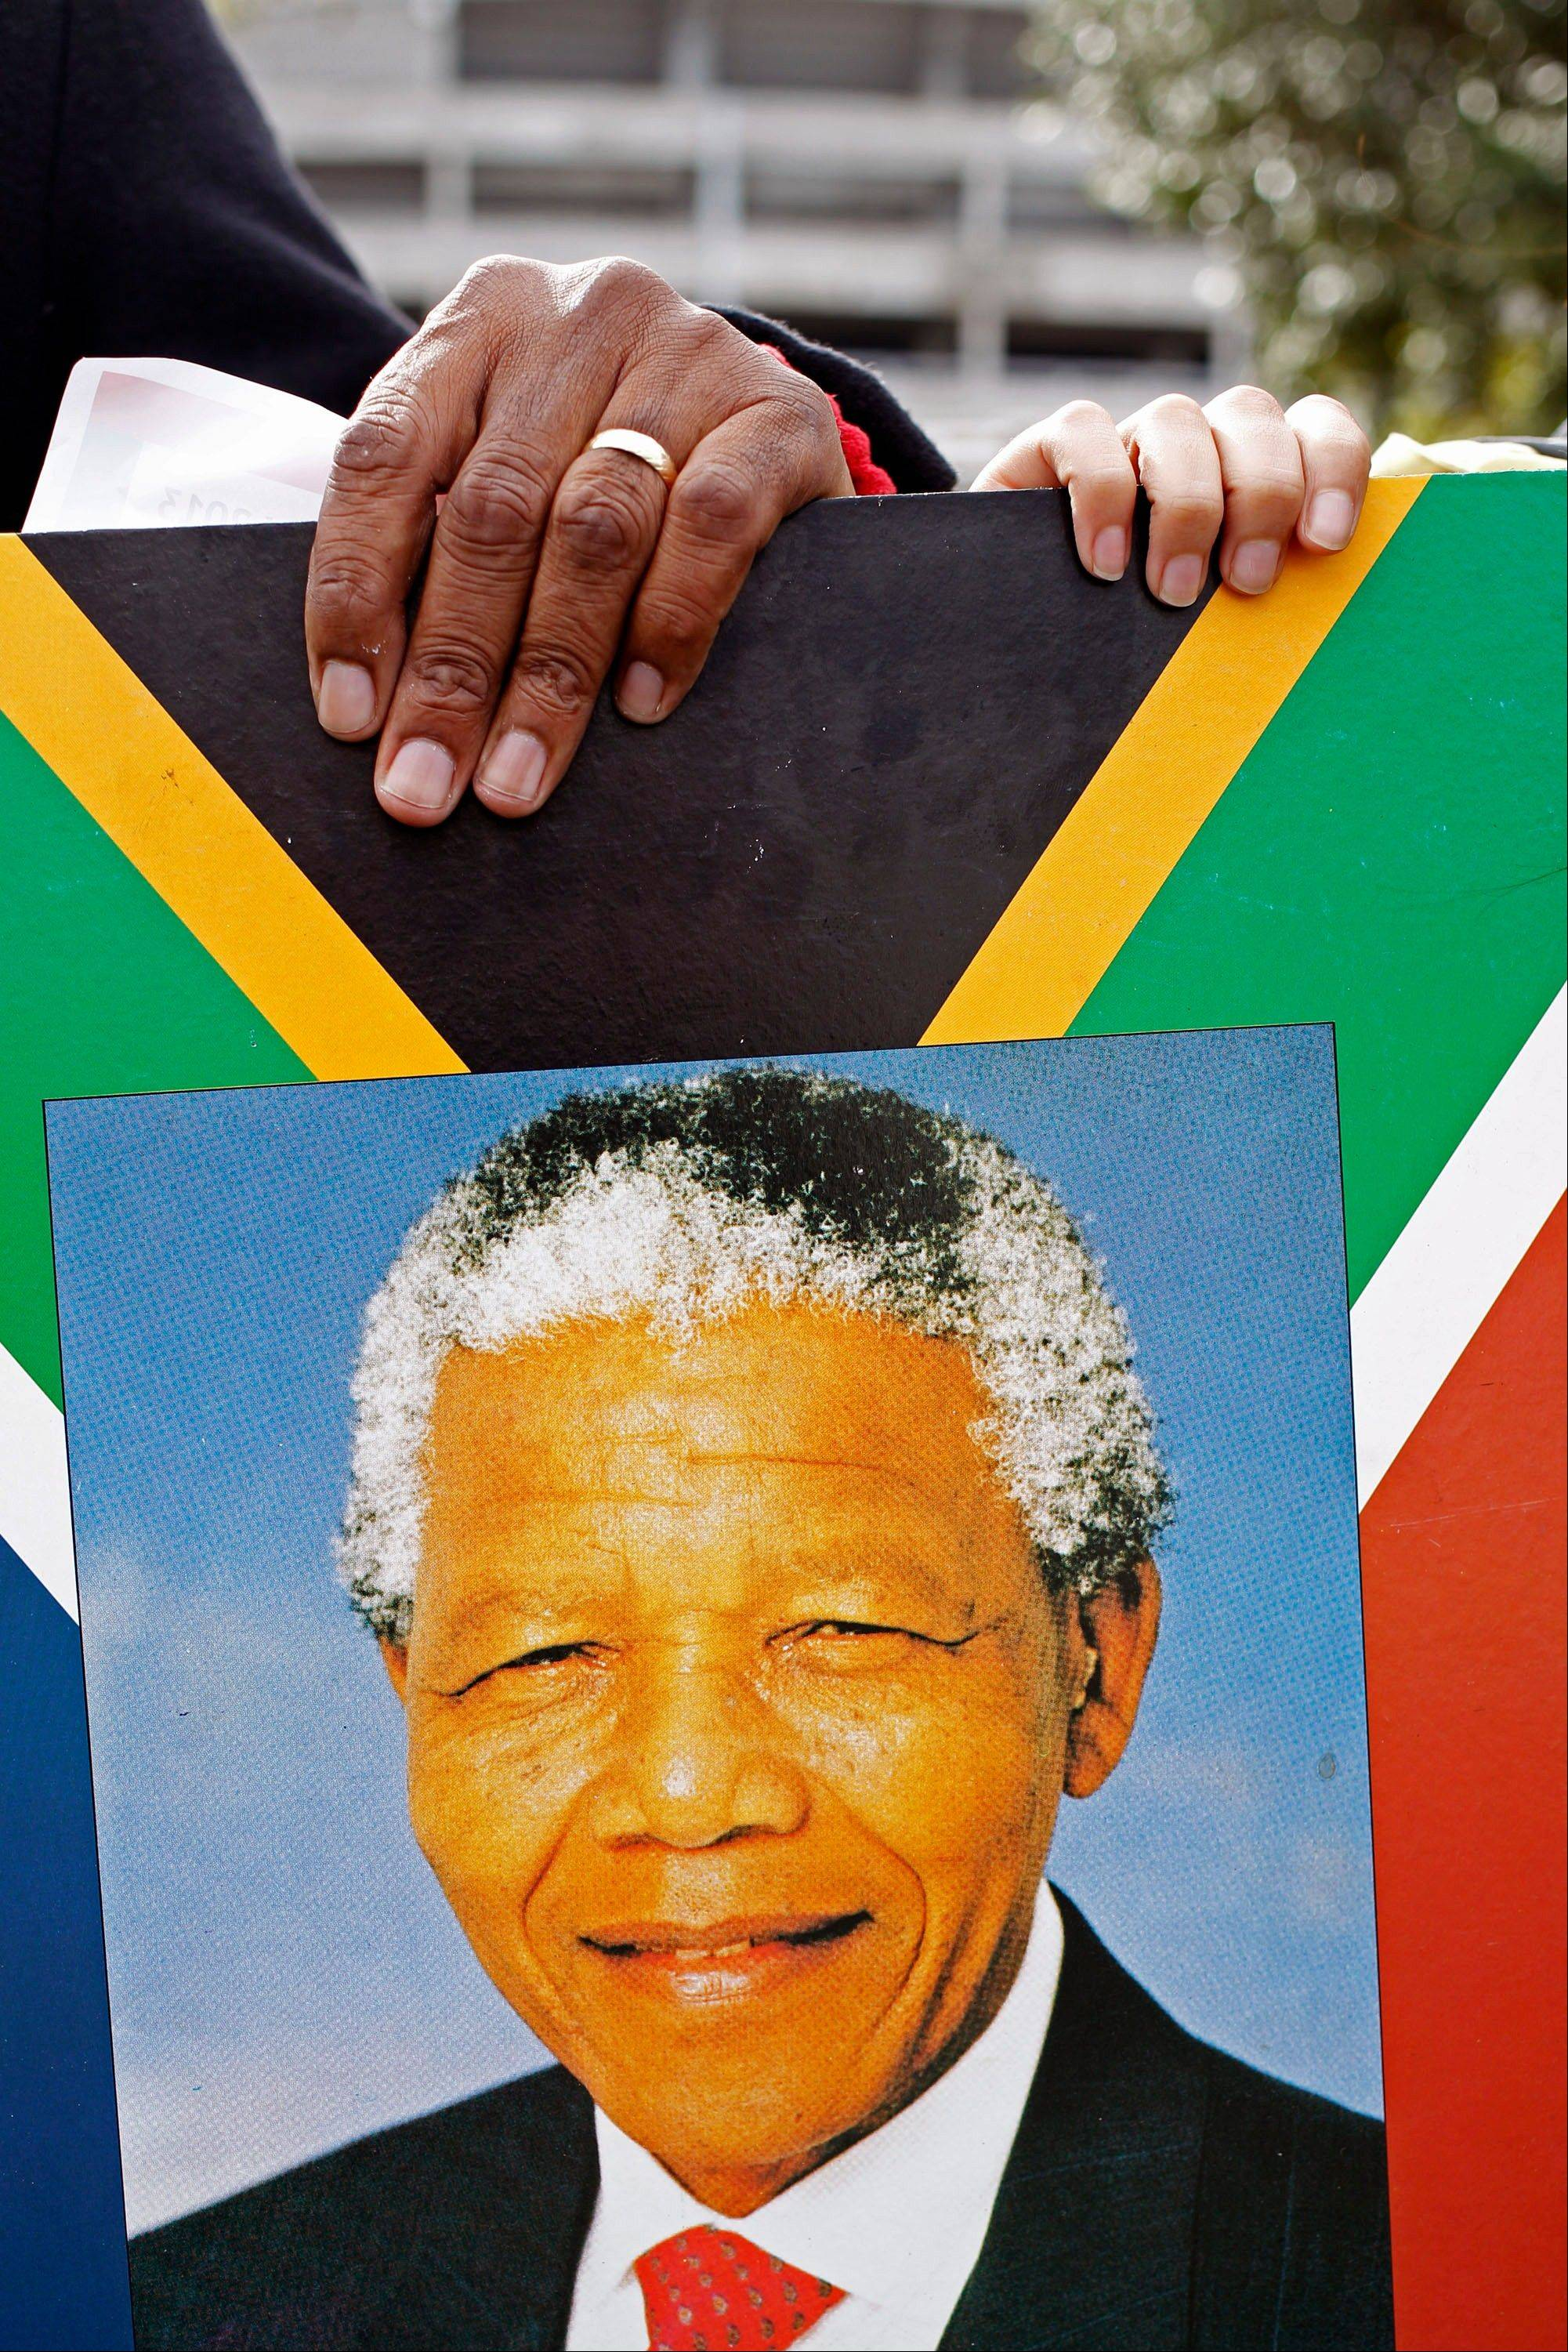 South Africa celebrated Nelson Mandela's 95th birthday on Thursday, a milestone capped by news that the former president's health was improving after fears that he was close to death during ongoing hospital treatment.